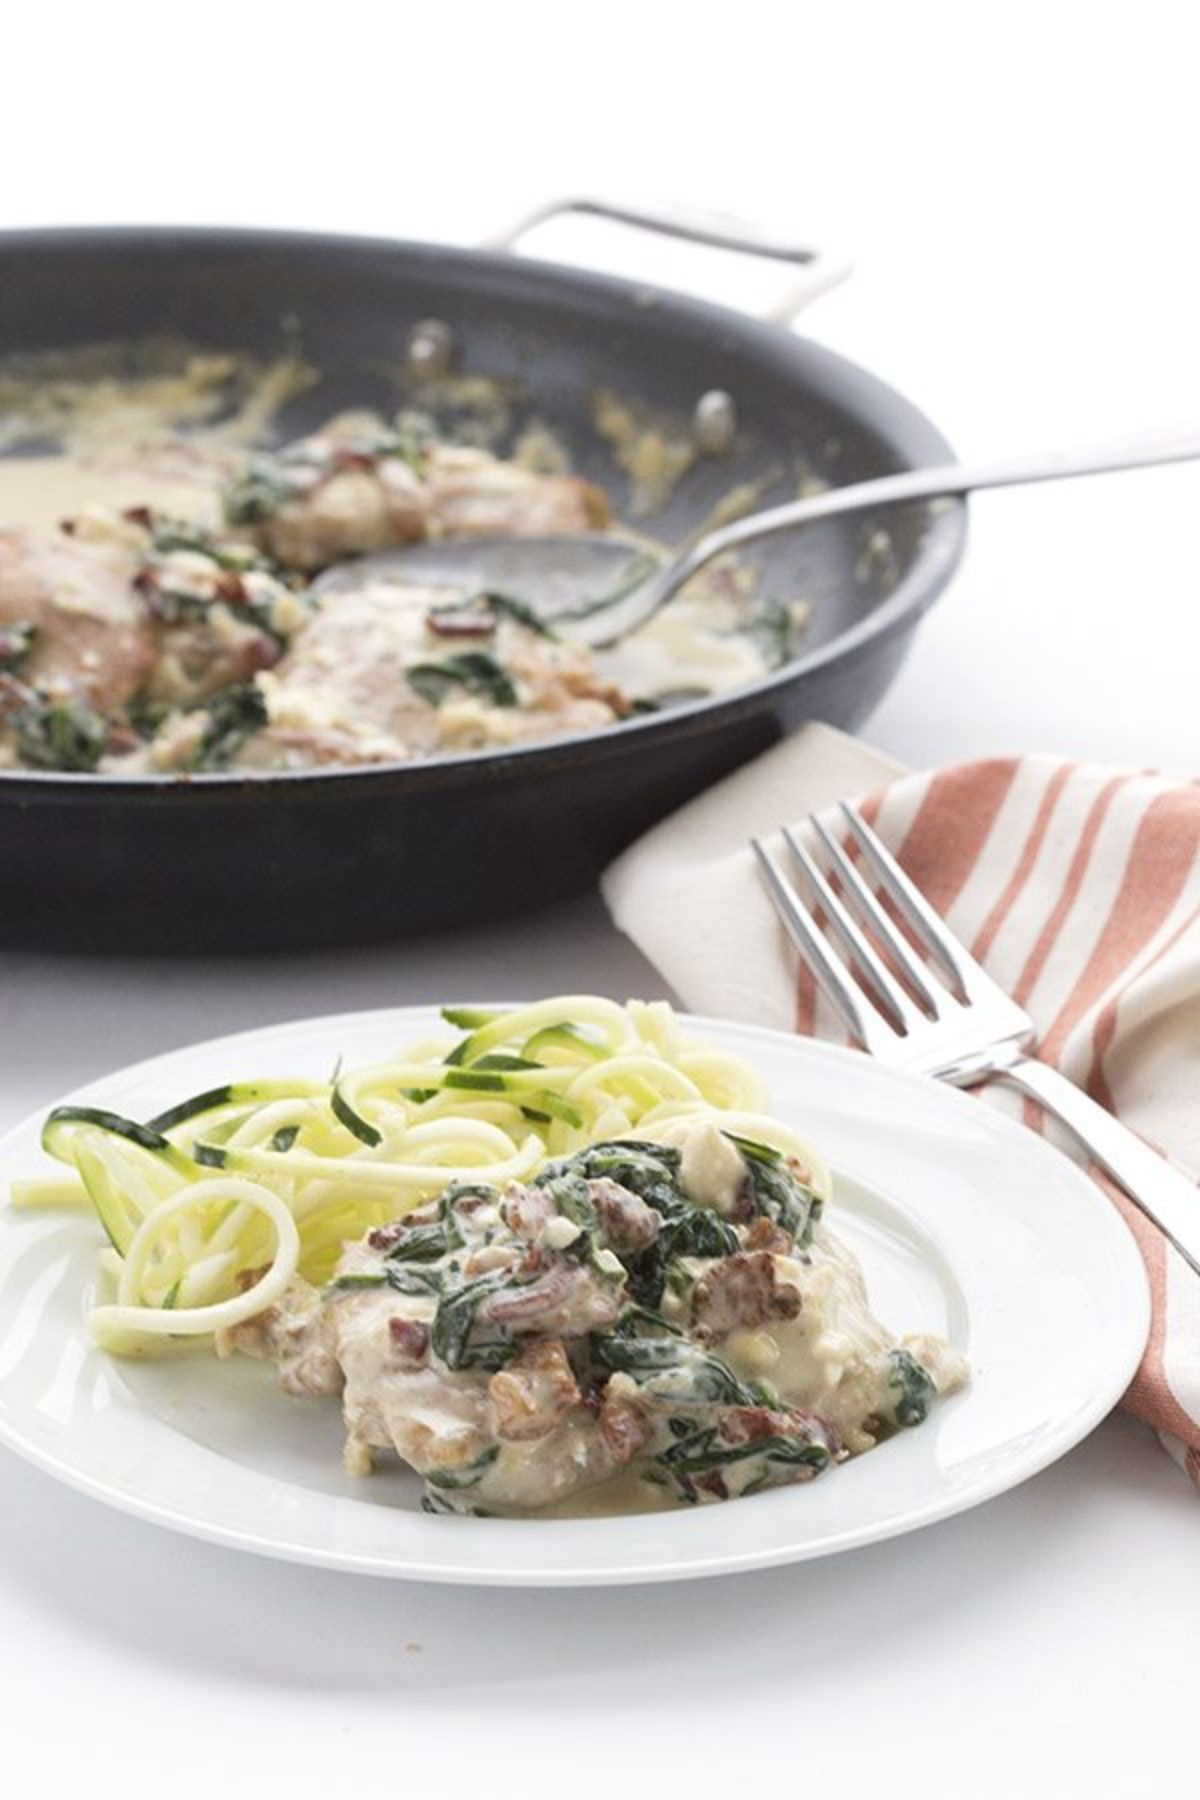 a white ocuntertop on which sits a dark gray skillet containing meat in a creamy sauce. In teh foregraound is a white plate with some of that meat and sauce, green wilted leaves and some spiralized courgette